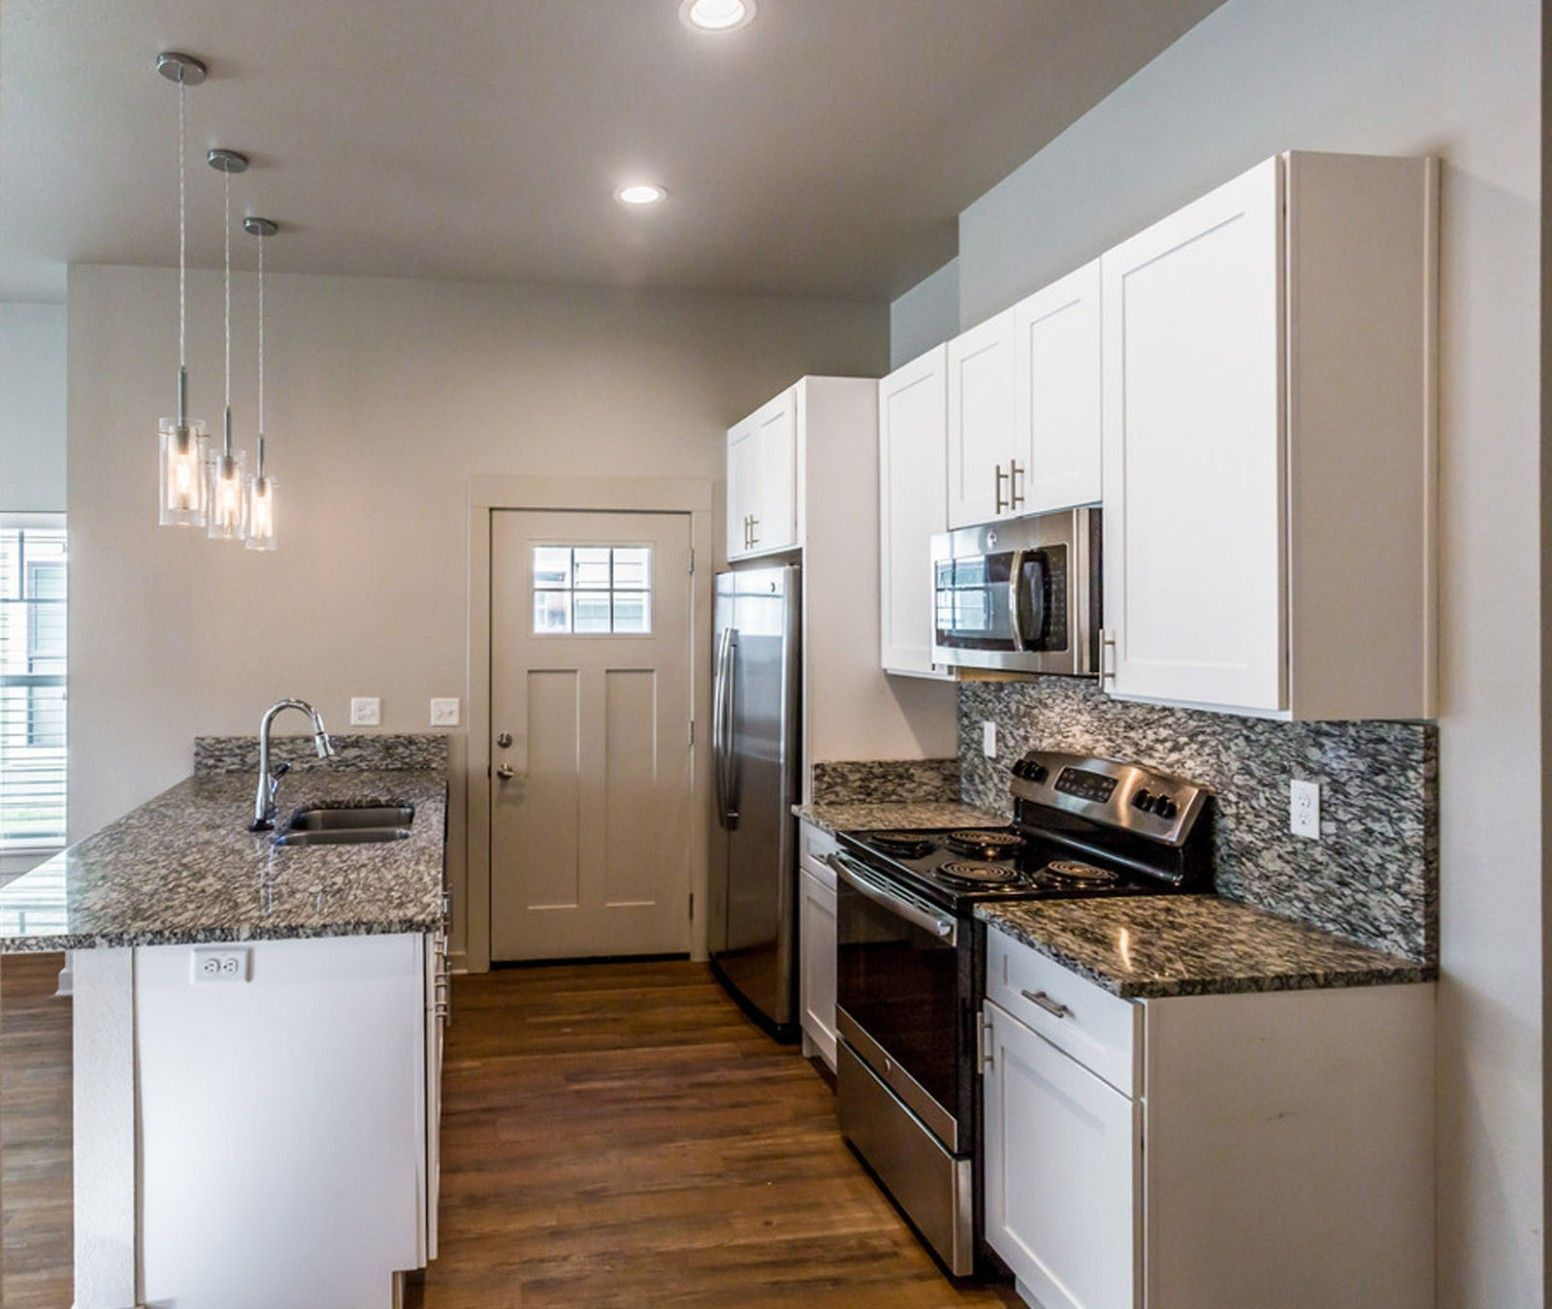 Kitchen Remodeling Little Rock Ar In 2020 Kitchen Remodel Bedroom Apartment Renting A House